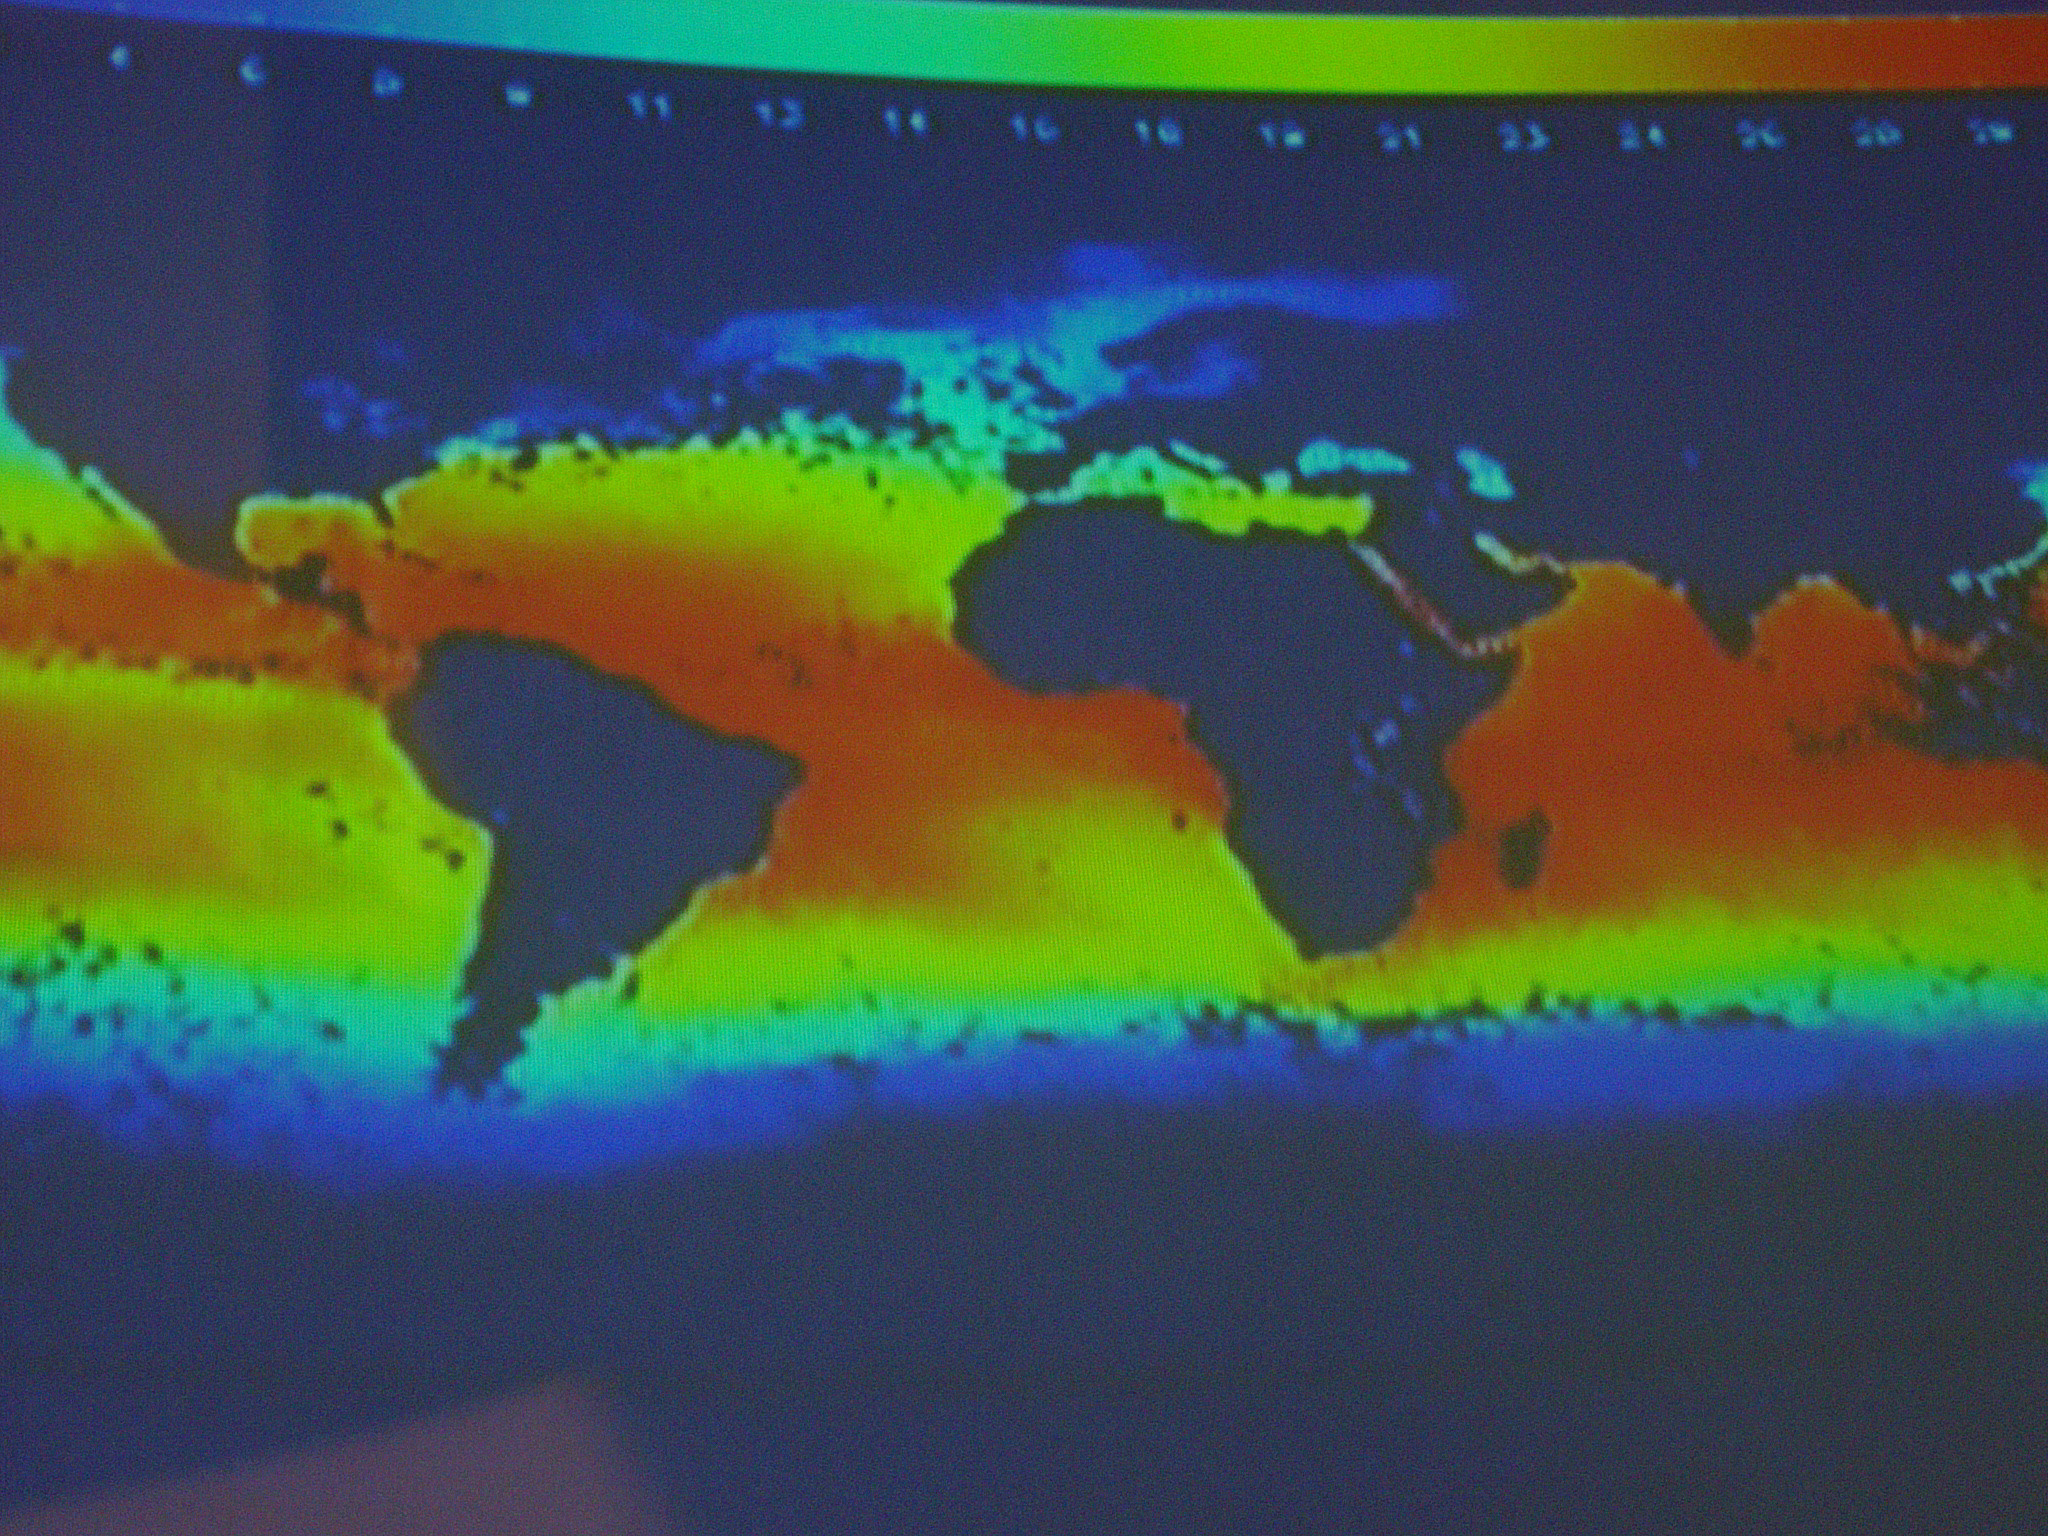 Thermal Map Of The World.Free Image Of Thermal Imaging On A World Map